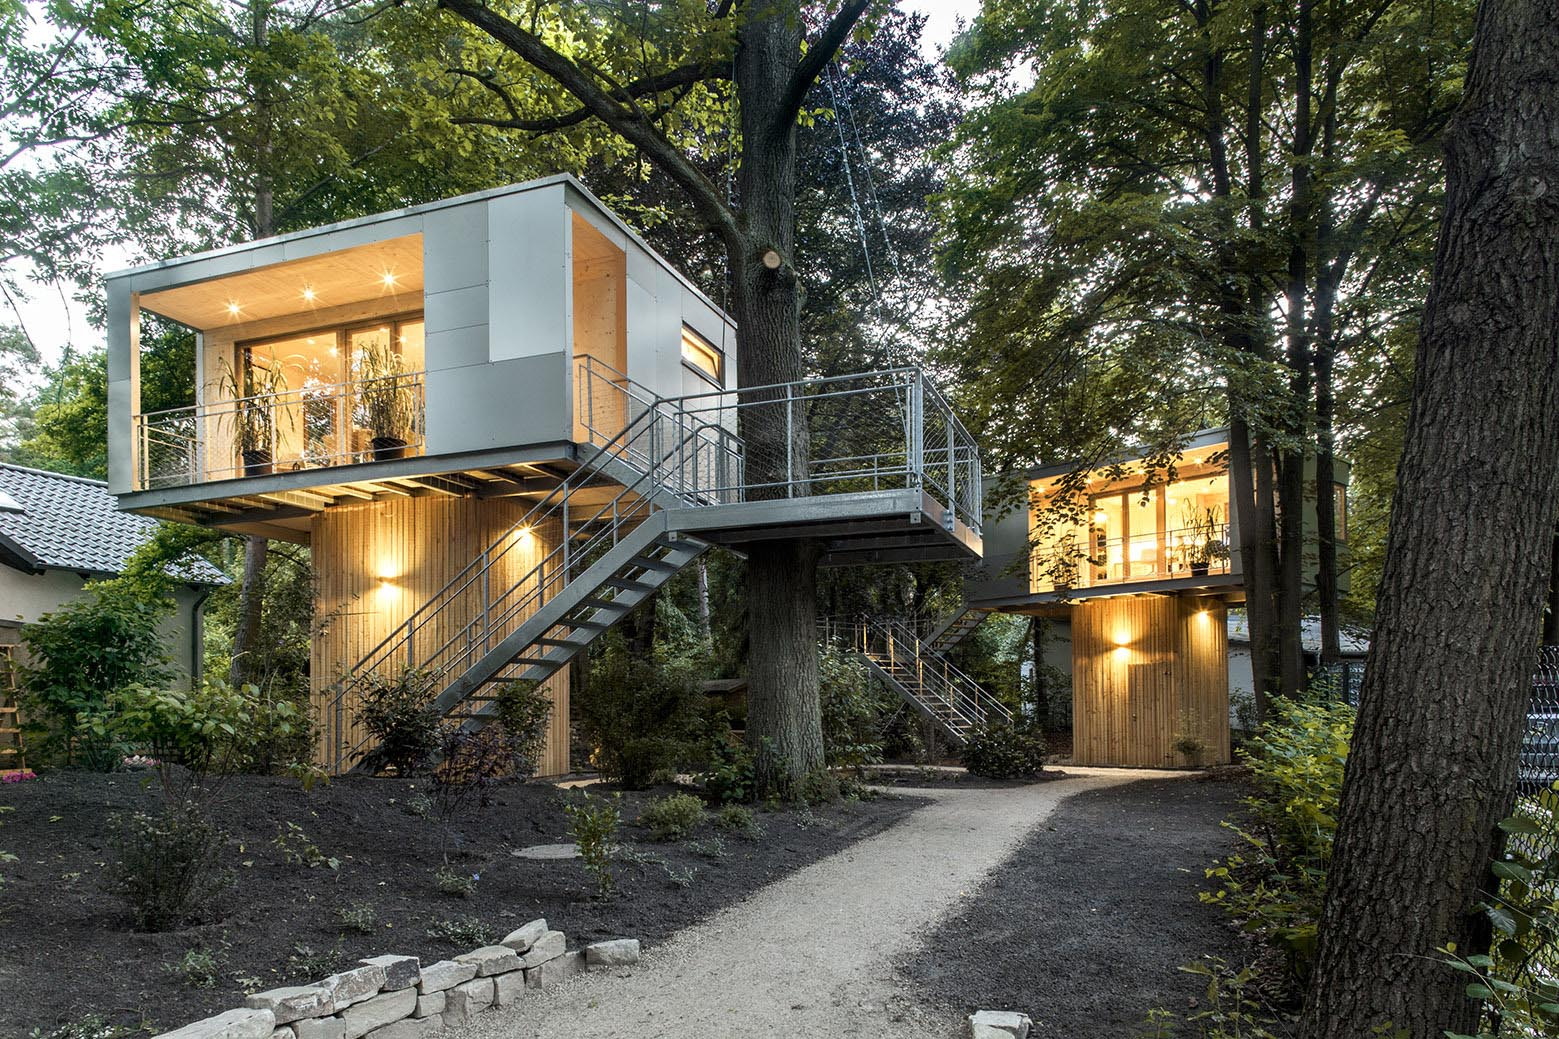 Modern treehouse with a sleek look and matte surface